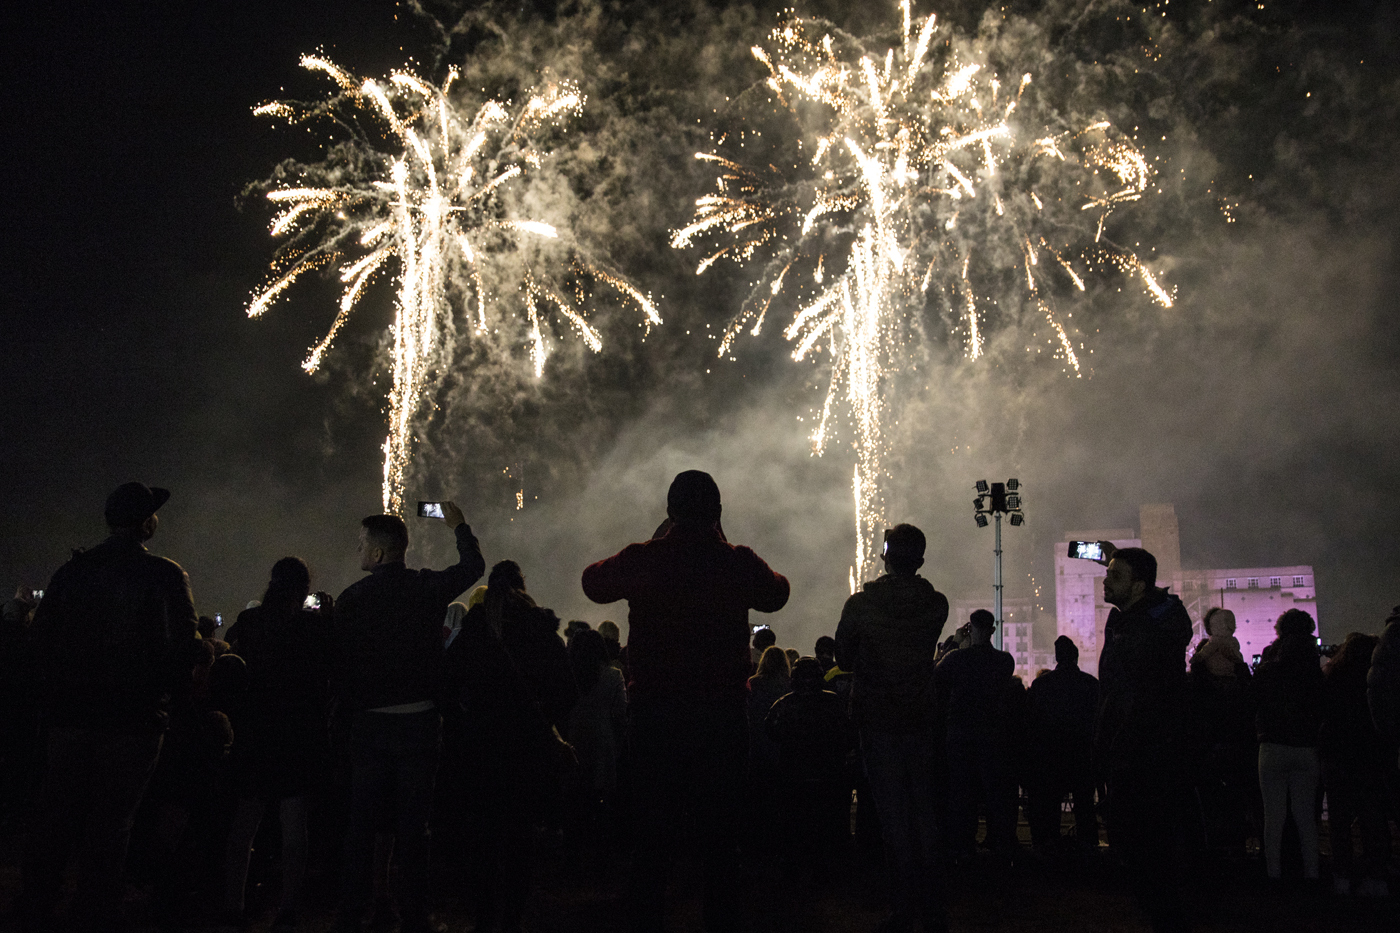 Night sky filled with fireworks with silhouetted crowd looking up at them